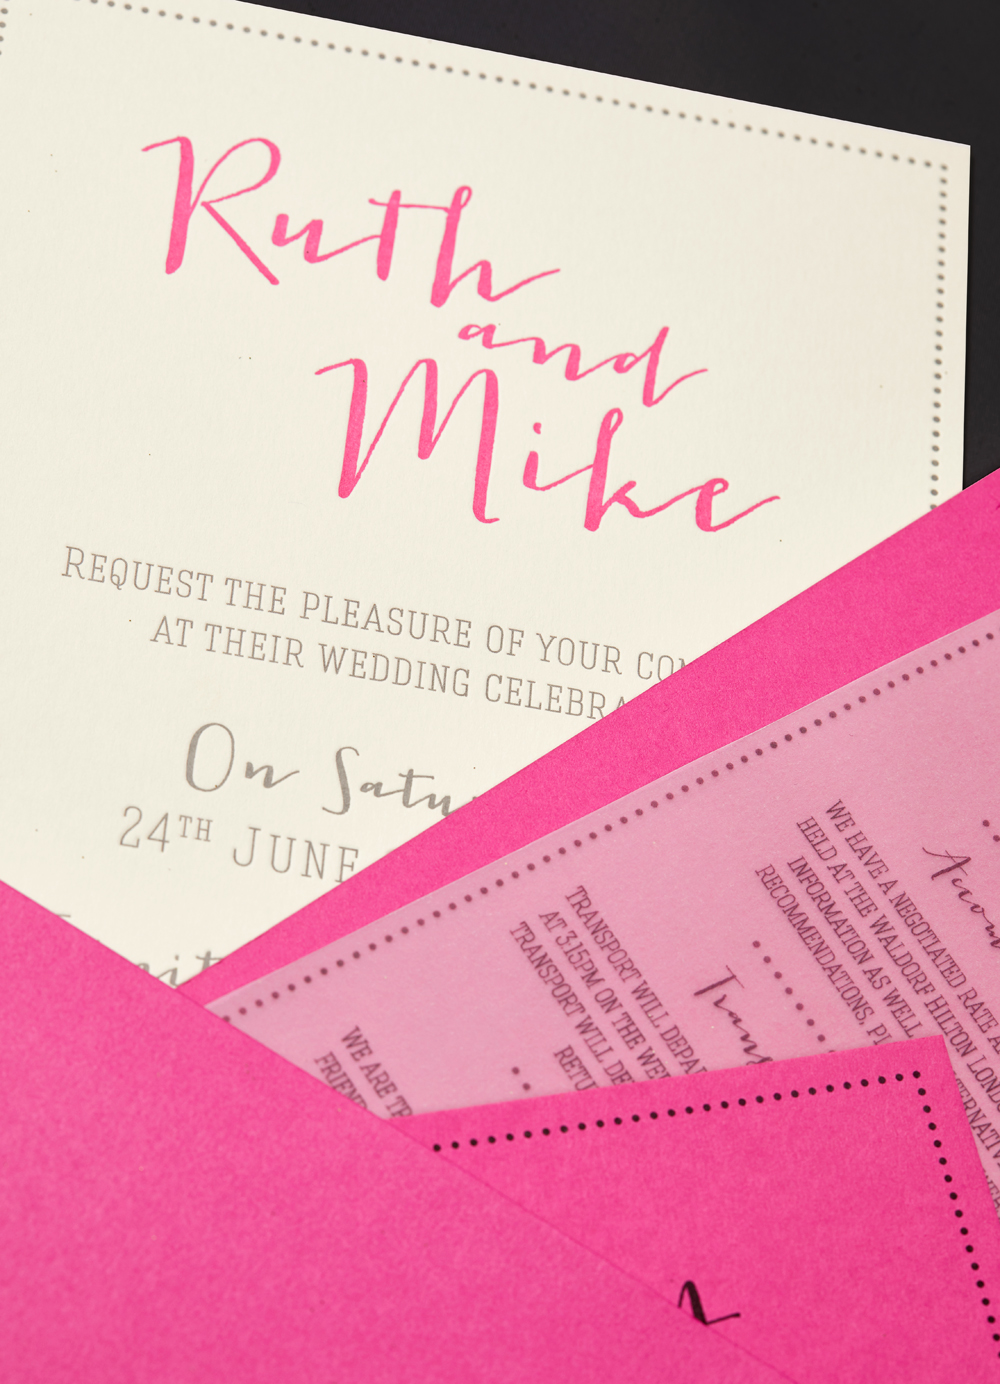 Ruth and Mike's bespoke wedding stationery